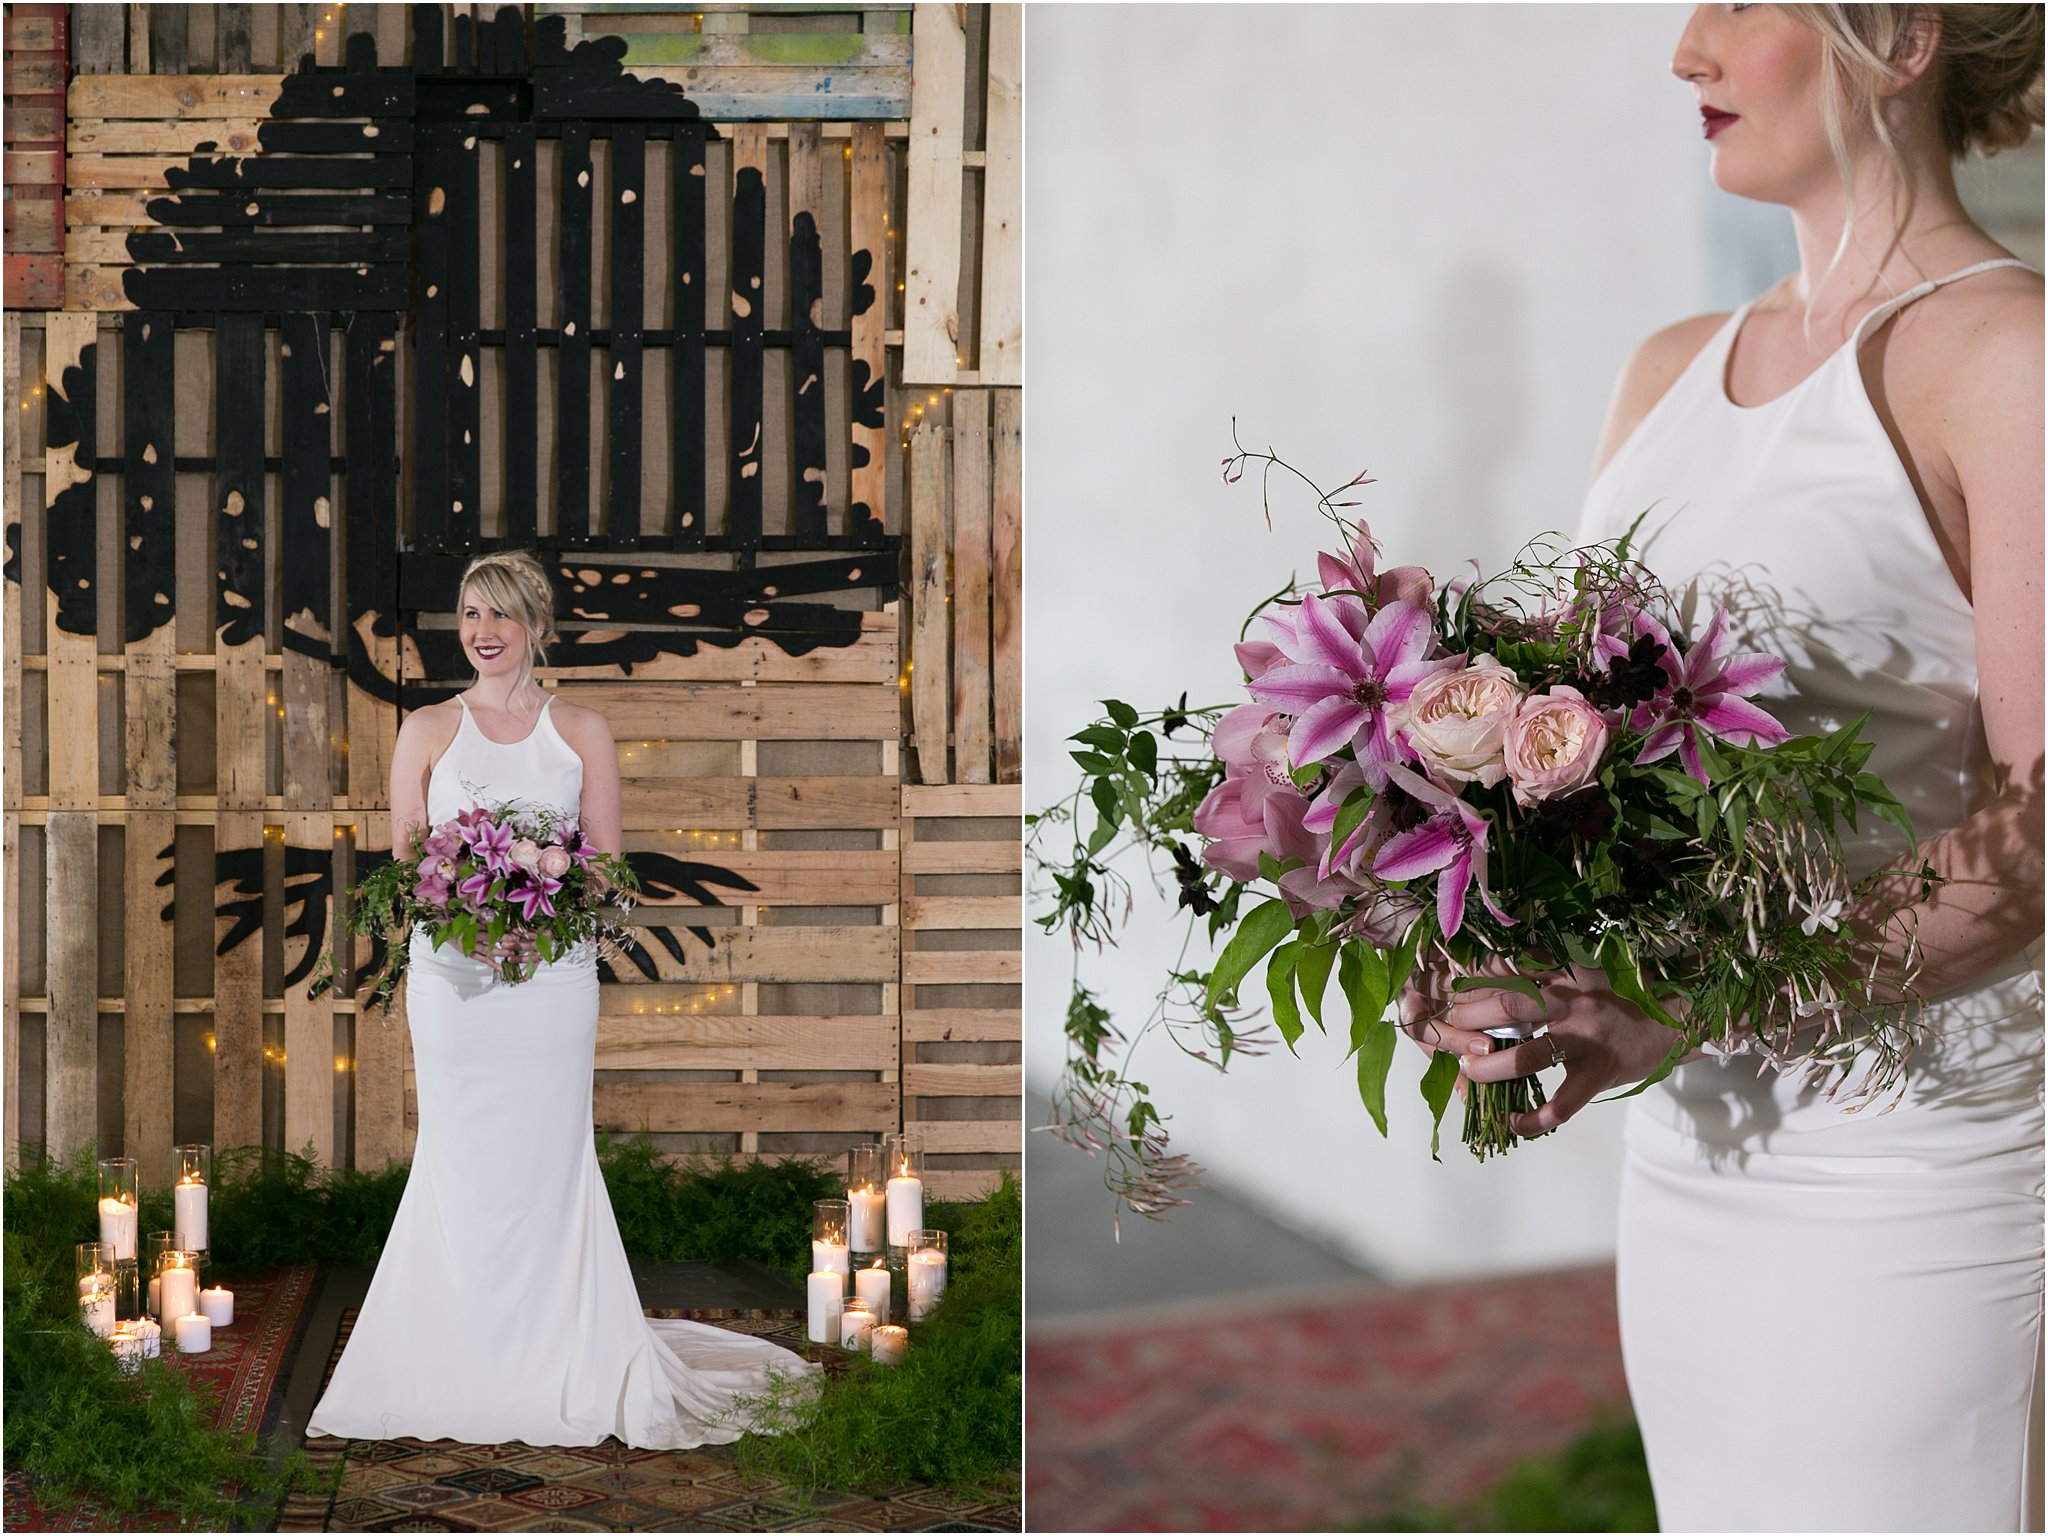 jessica_ryan_photography_oconnor_brewing_wedding_oconnor_brewing_co_norfolk_virginia_roost_flowers_blue_birds_garage__0789